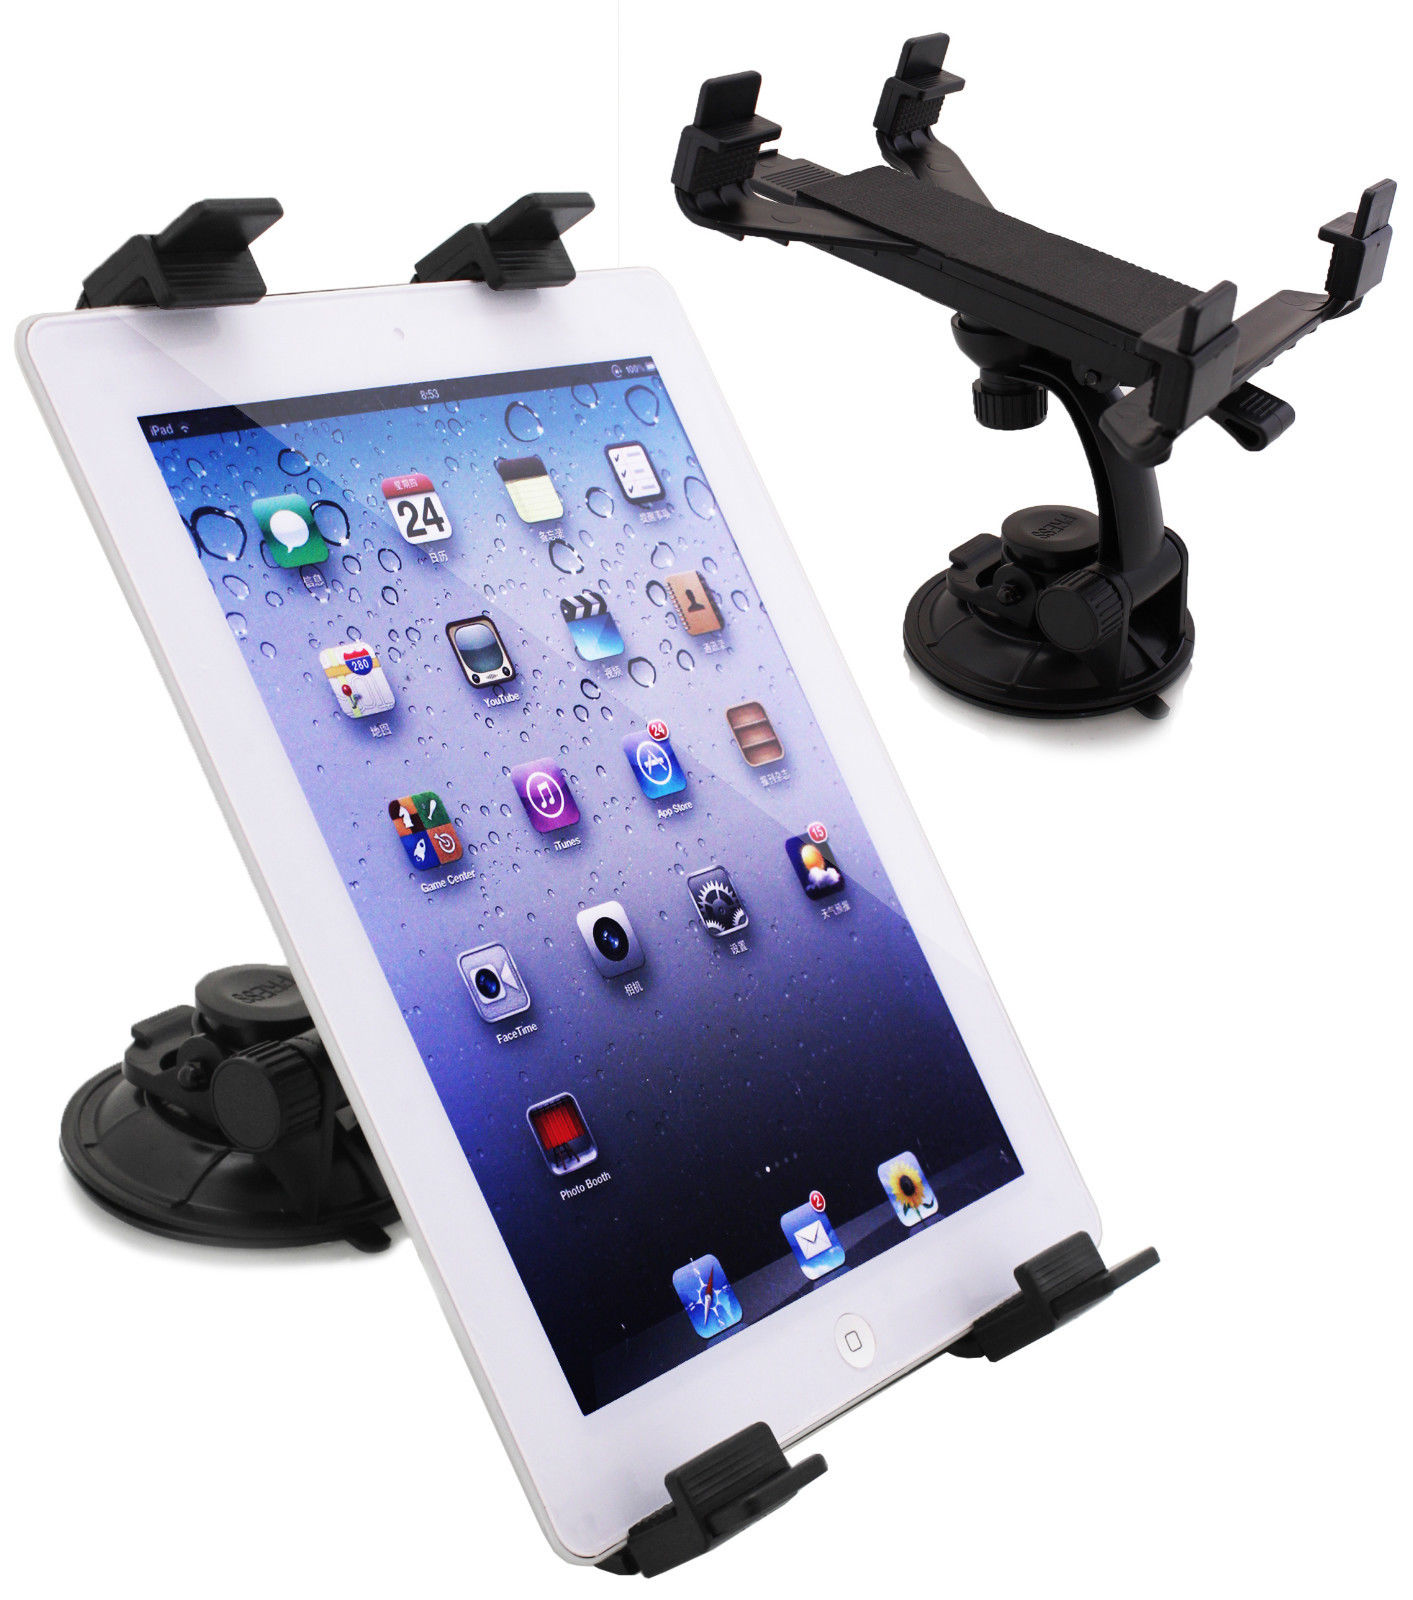 Apple /& Tablet PC for Car Windscreen Suction Mount Holder 360° Bracket for IPad